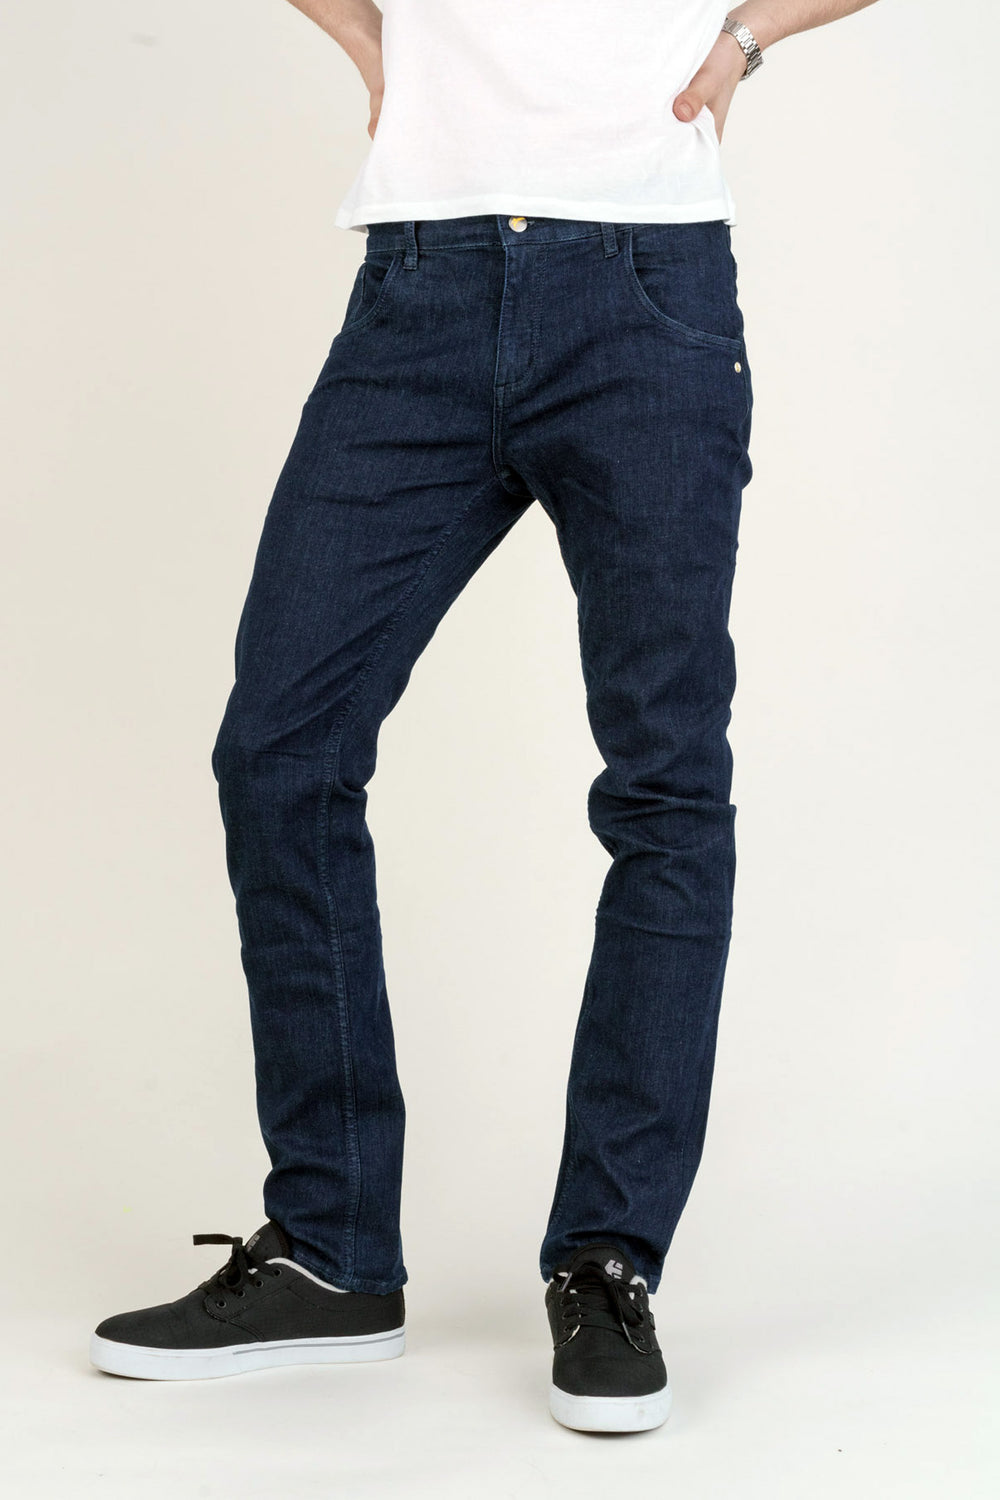 DEAN // Organic Flex Slim Fit Jeans in Blue Pilot - Monkee Genes Organic Jeans Denim - Men's Classic Skinny Monkee Genes Official  Monkee Genes Official